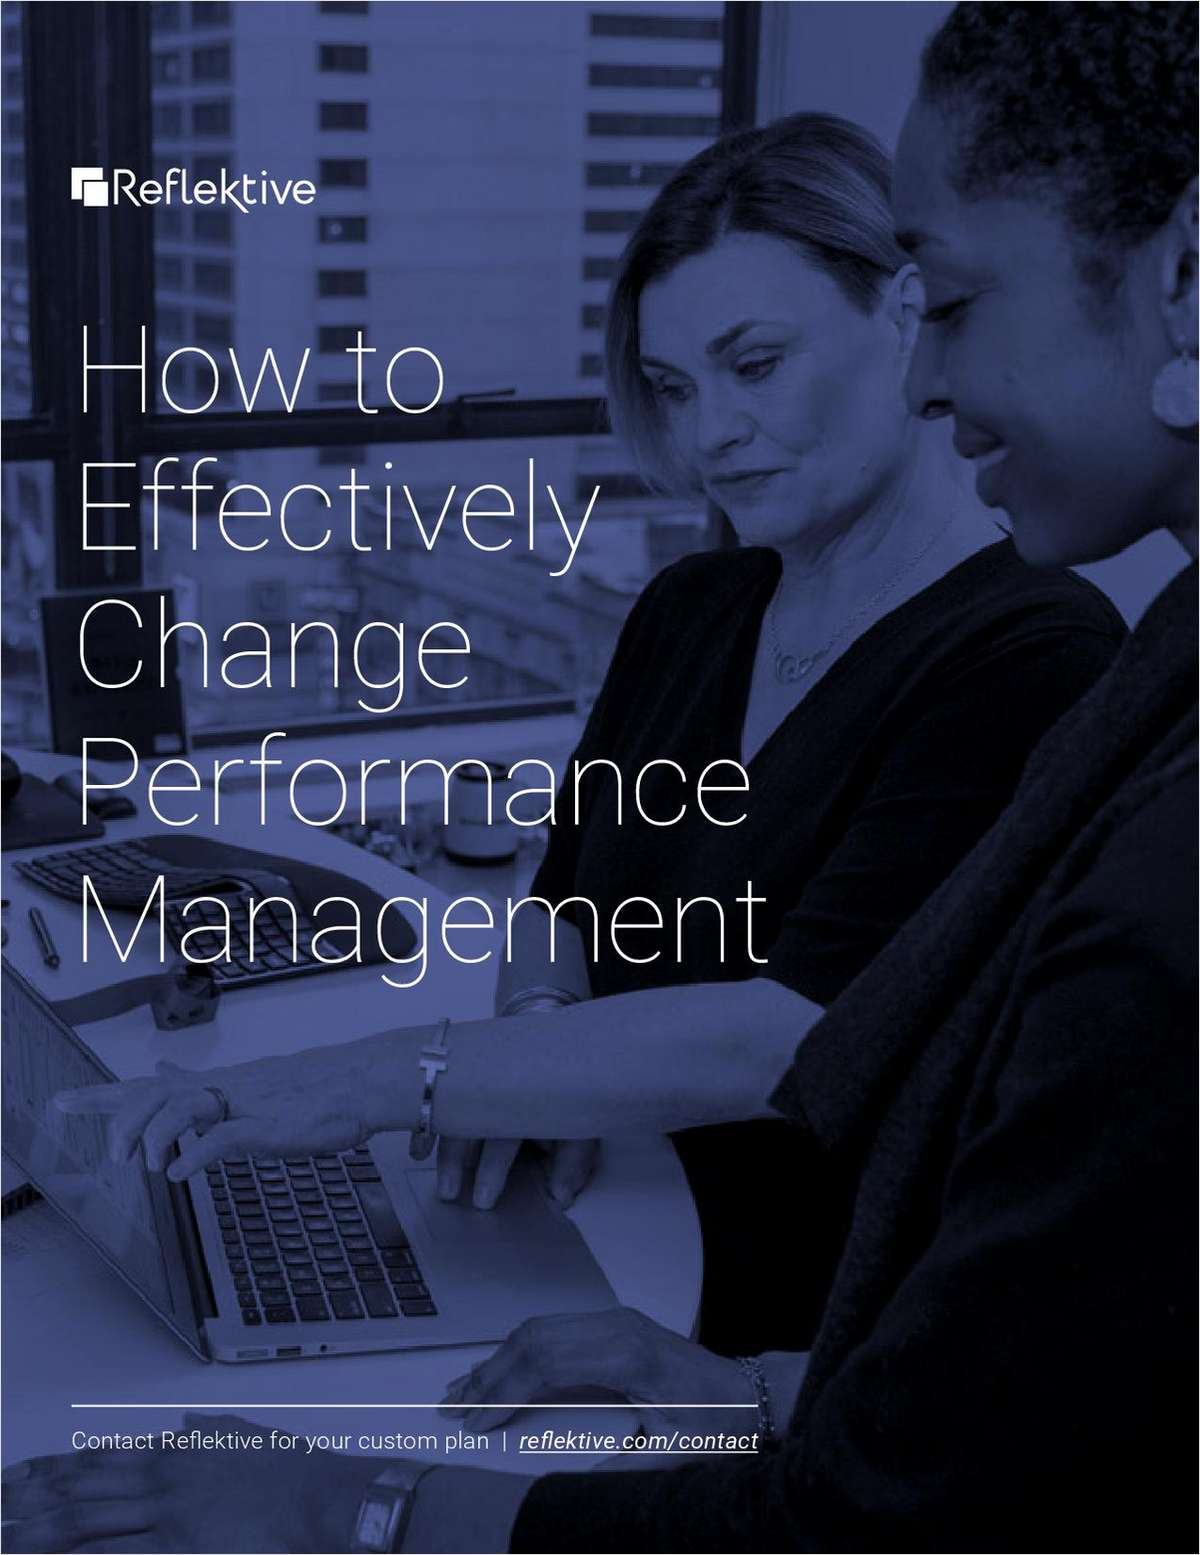 How to Effectively Change Performance Management